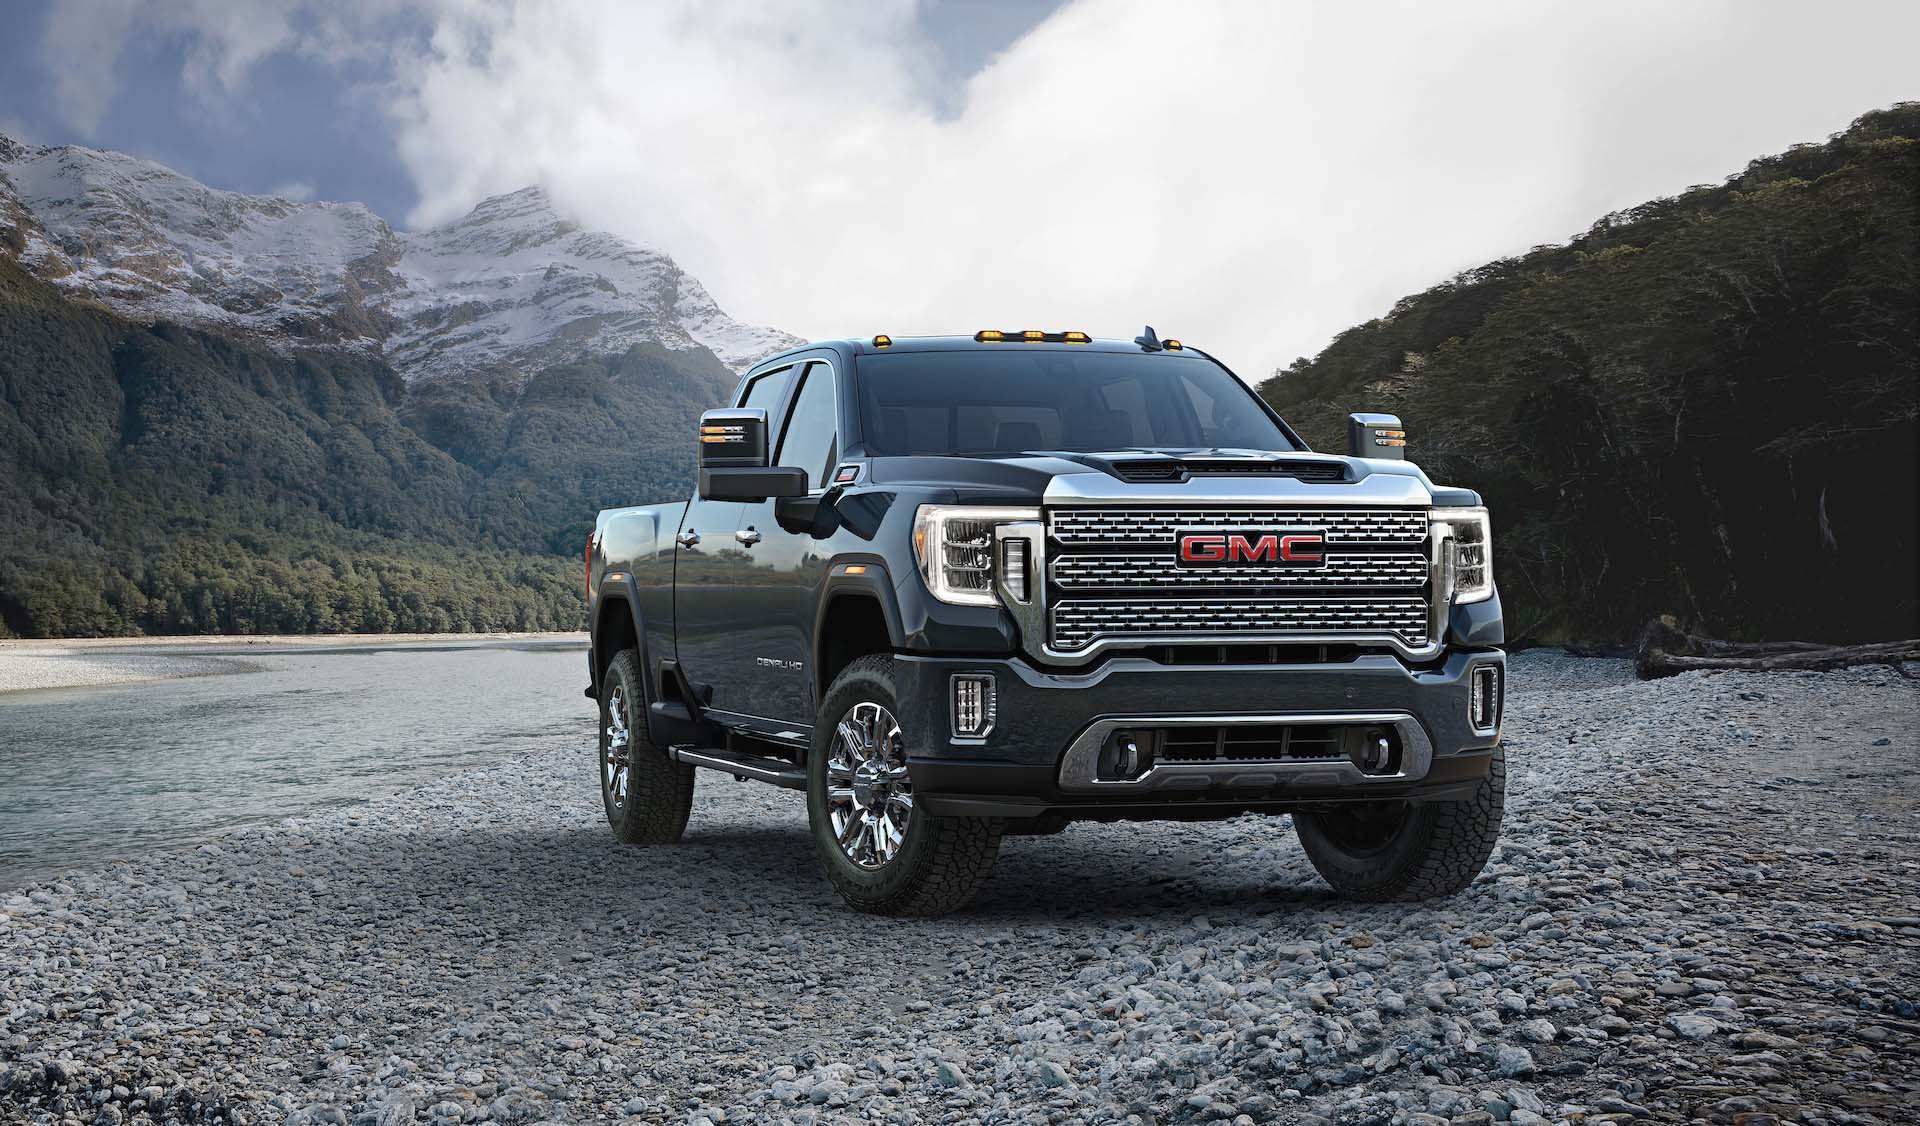 63 All New 2020 GMC Sierra Spy Shoot